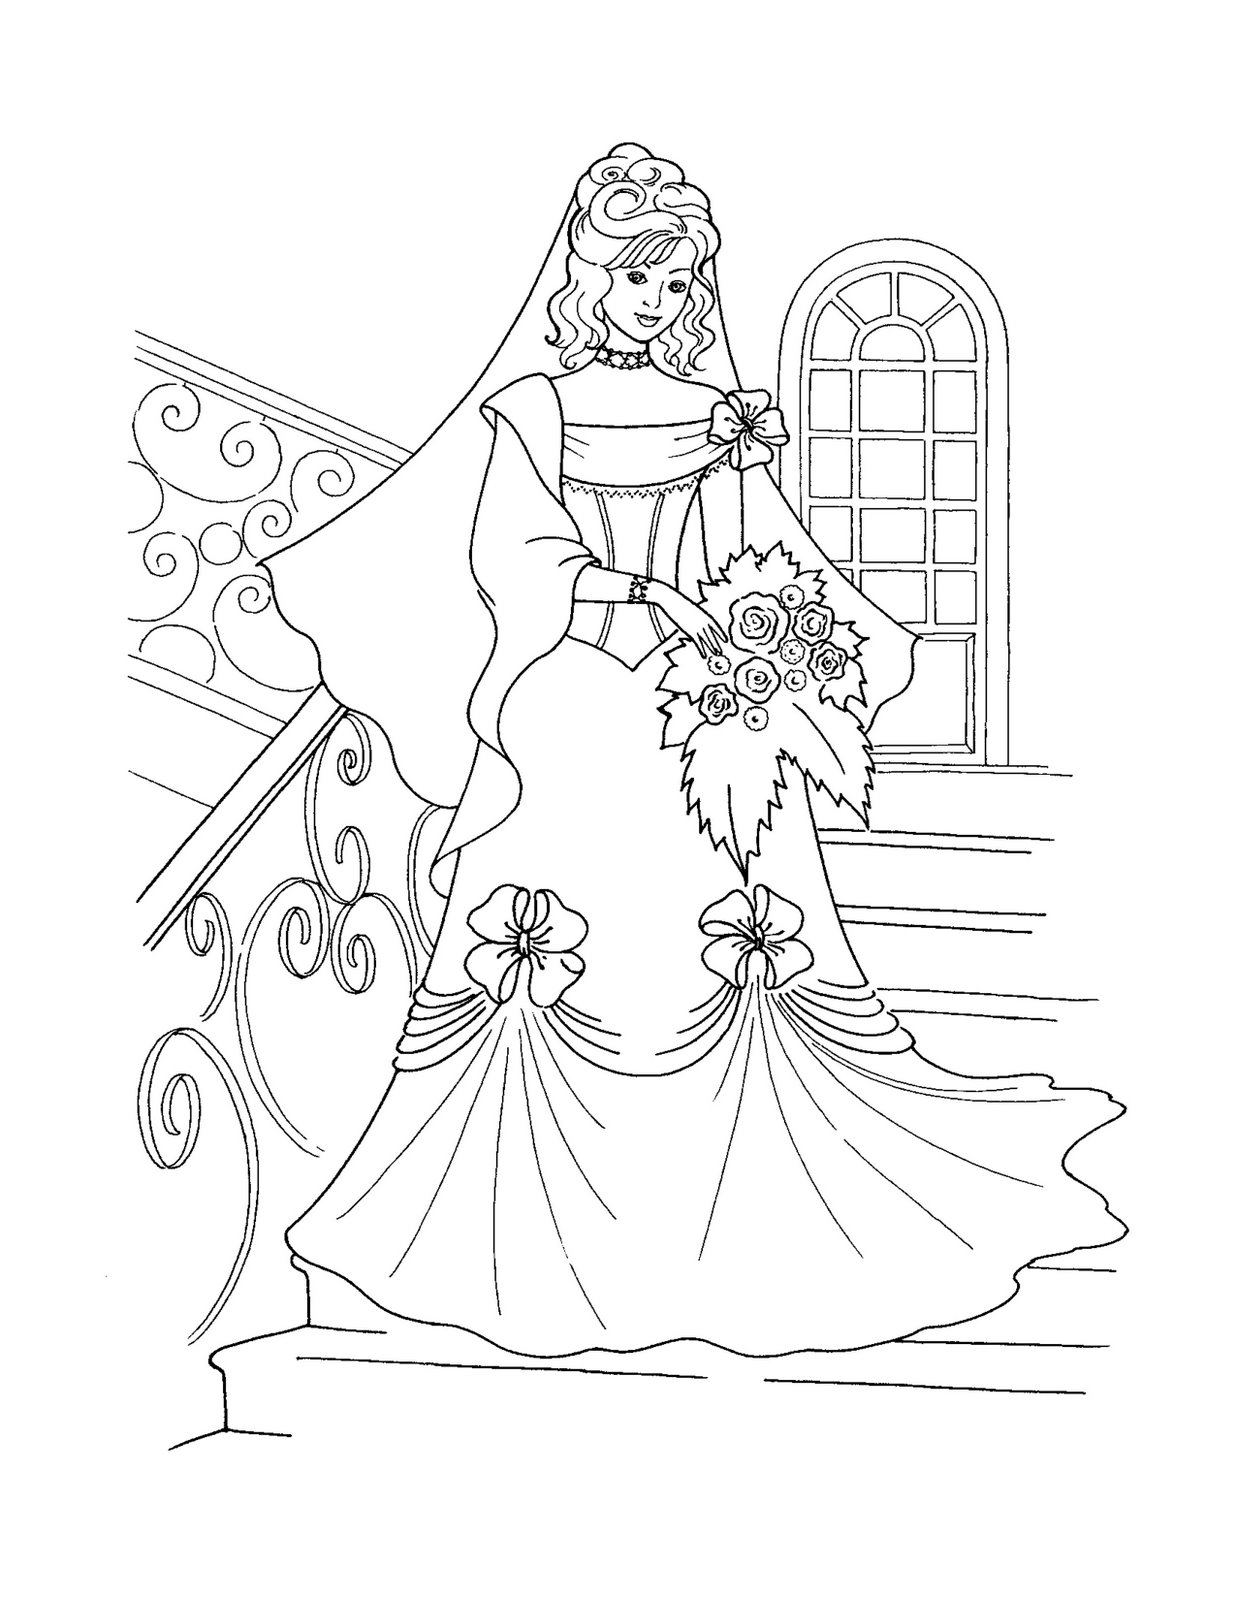 Pr princess coloring sheet - Disney Princess Castle Coloring Pages